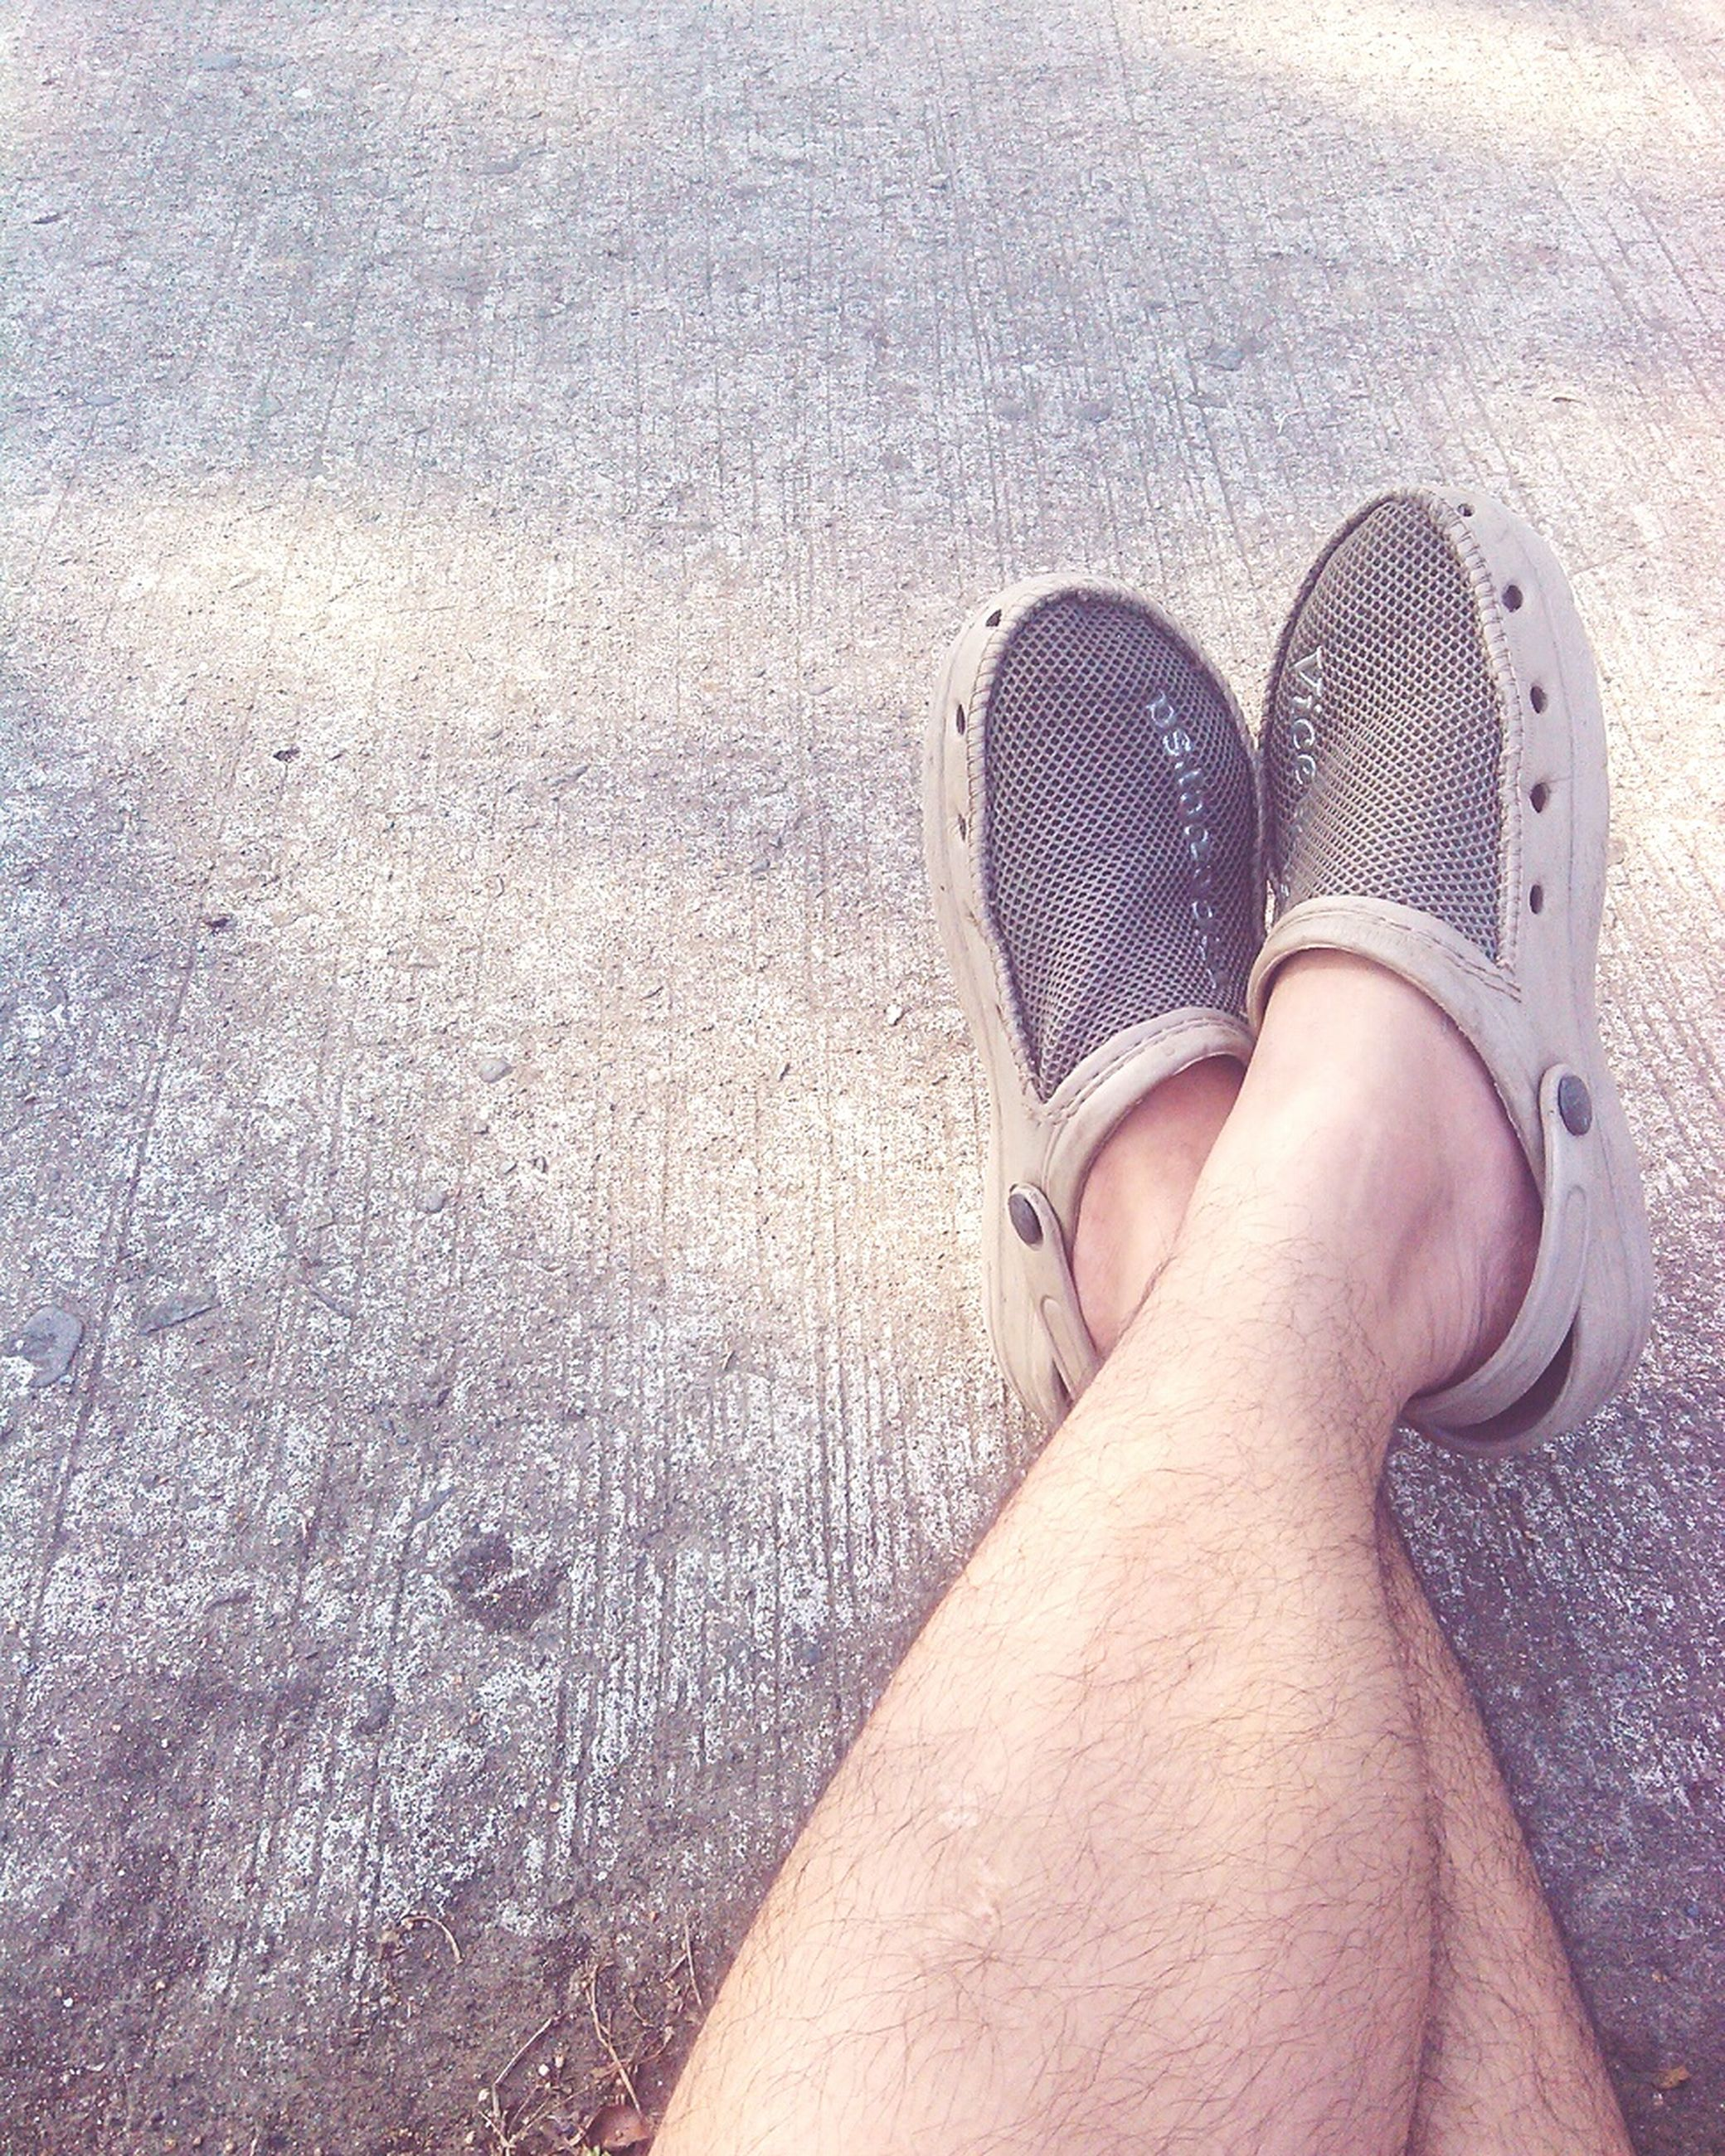 person, low section, personal perspective, human foot, lifestyles, barefoot, leisure activity, high angle view, part of, shoe, standing, sunlight, beach, footwear, close-up, sand